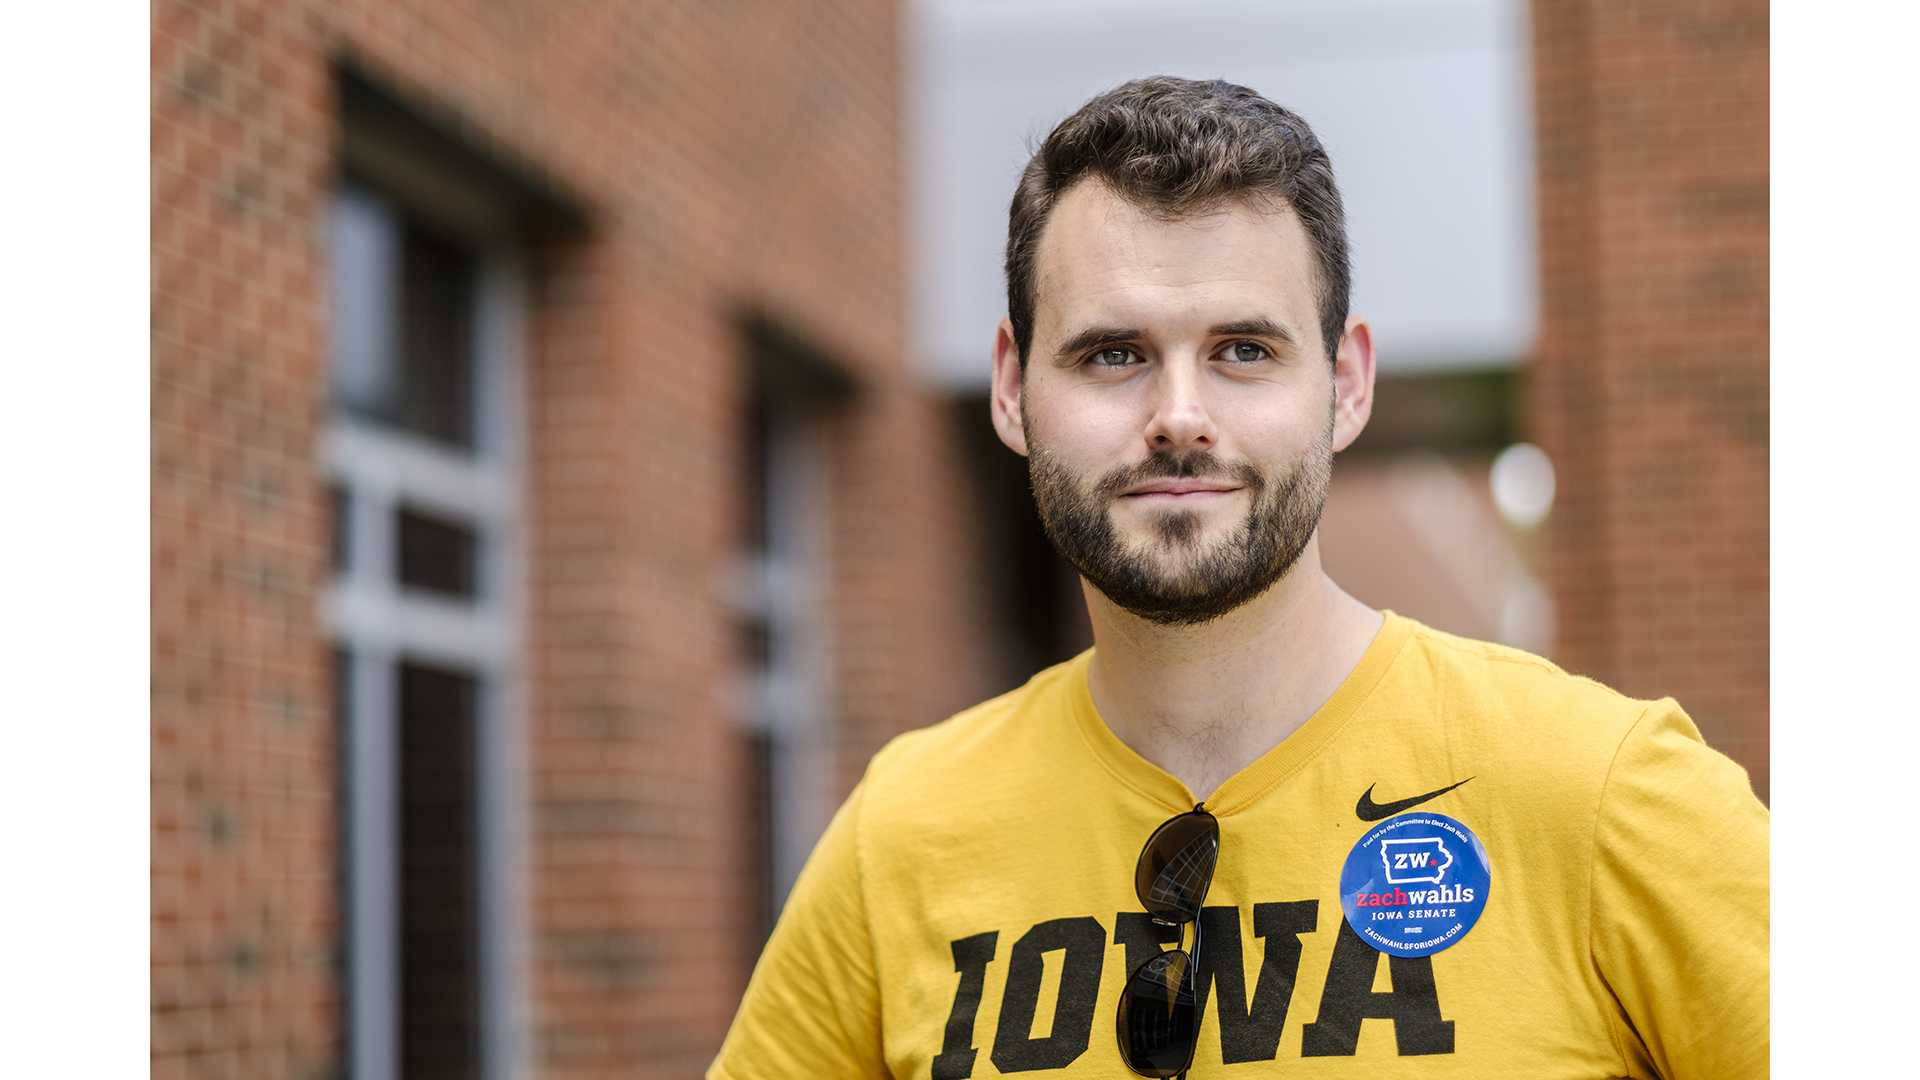 Zach Wahls believes his youth gives him the edge in Iowa Senate election